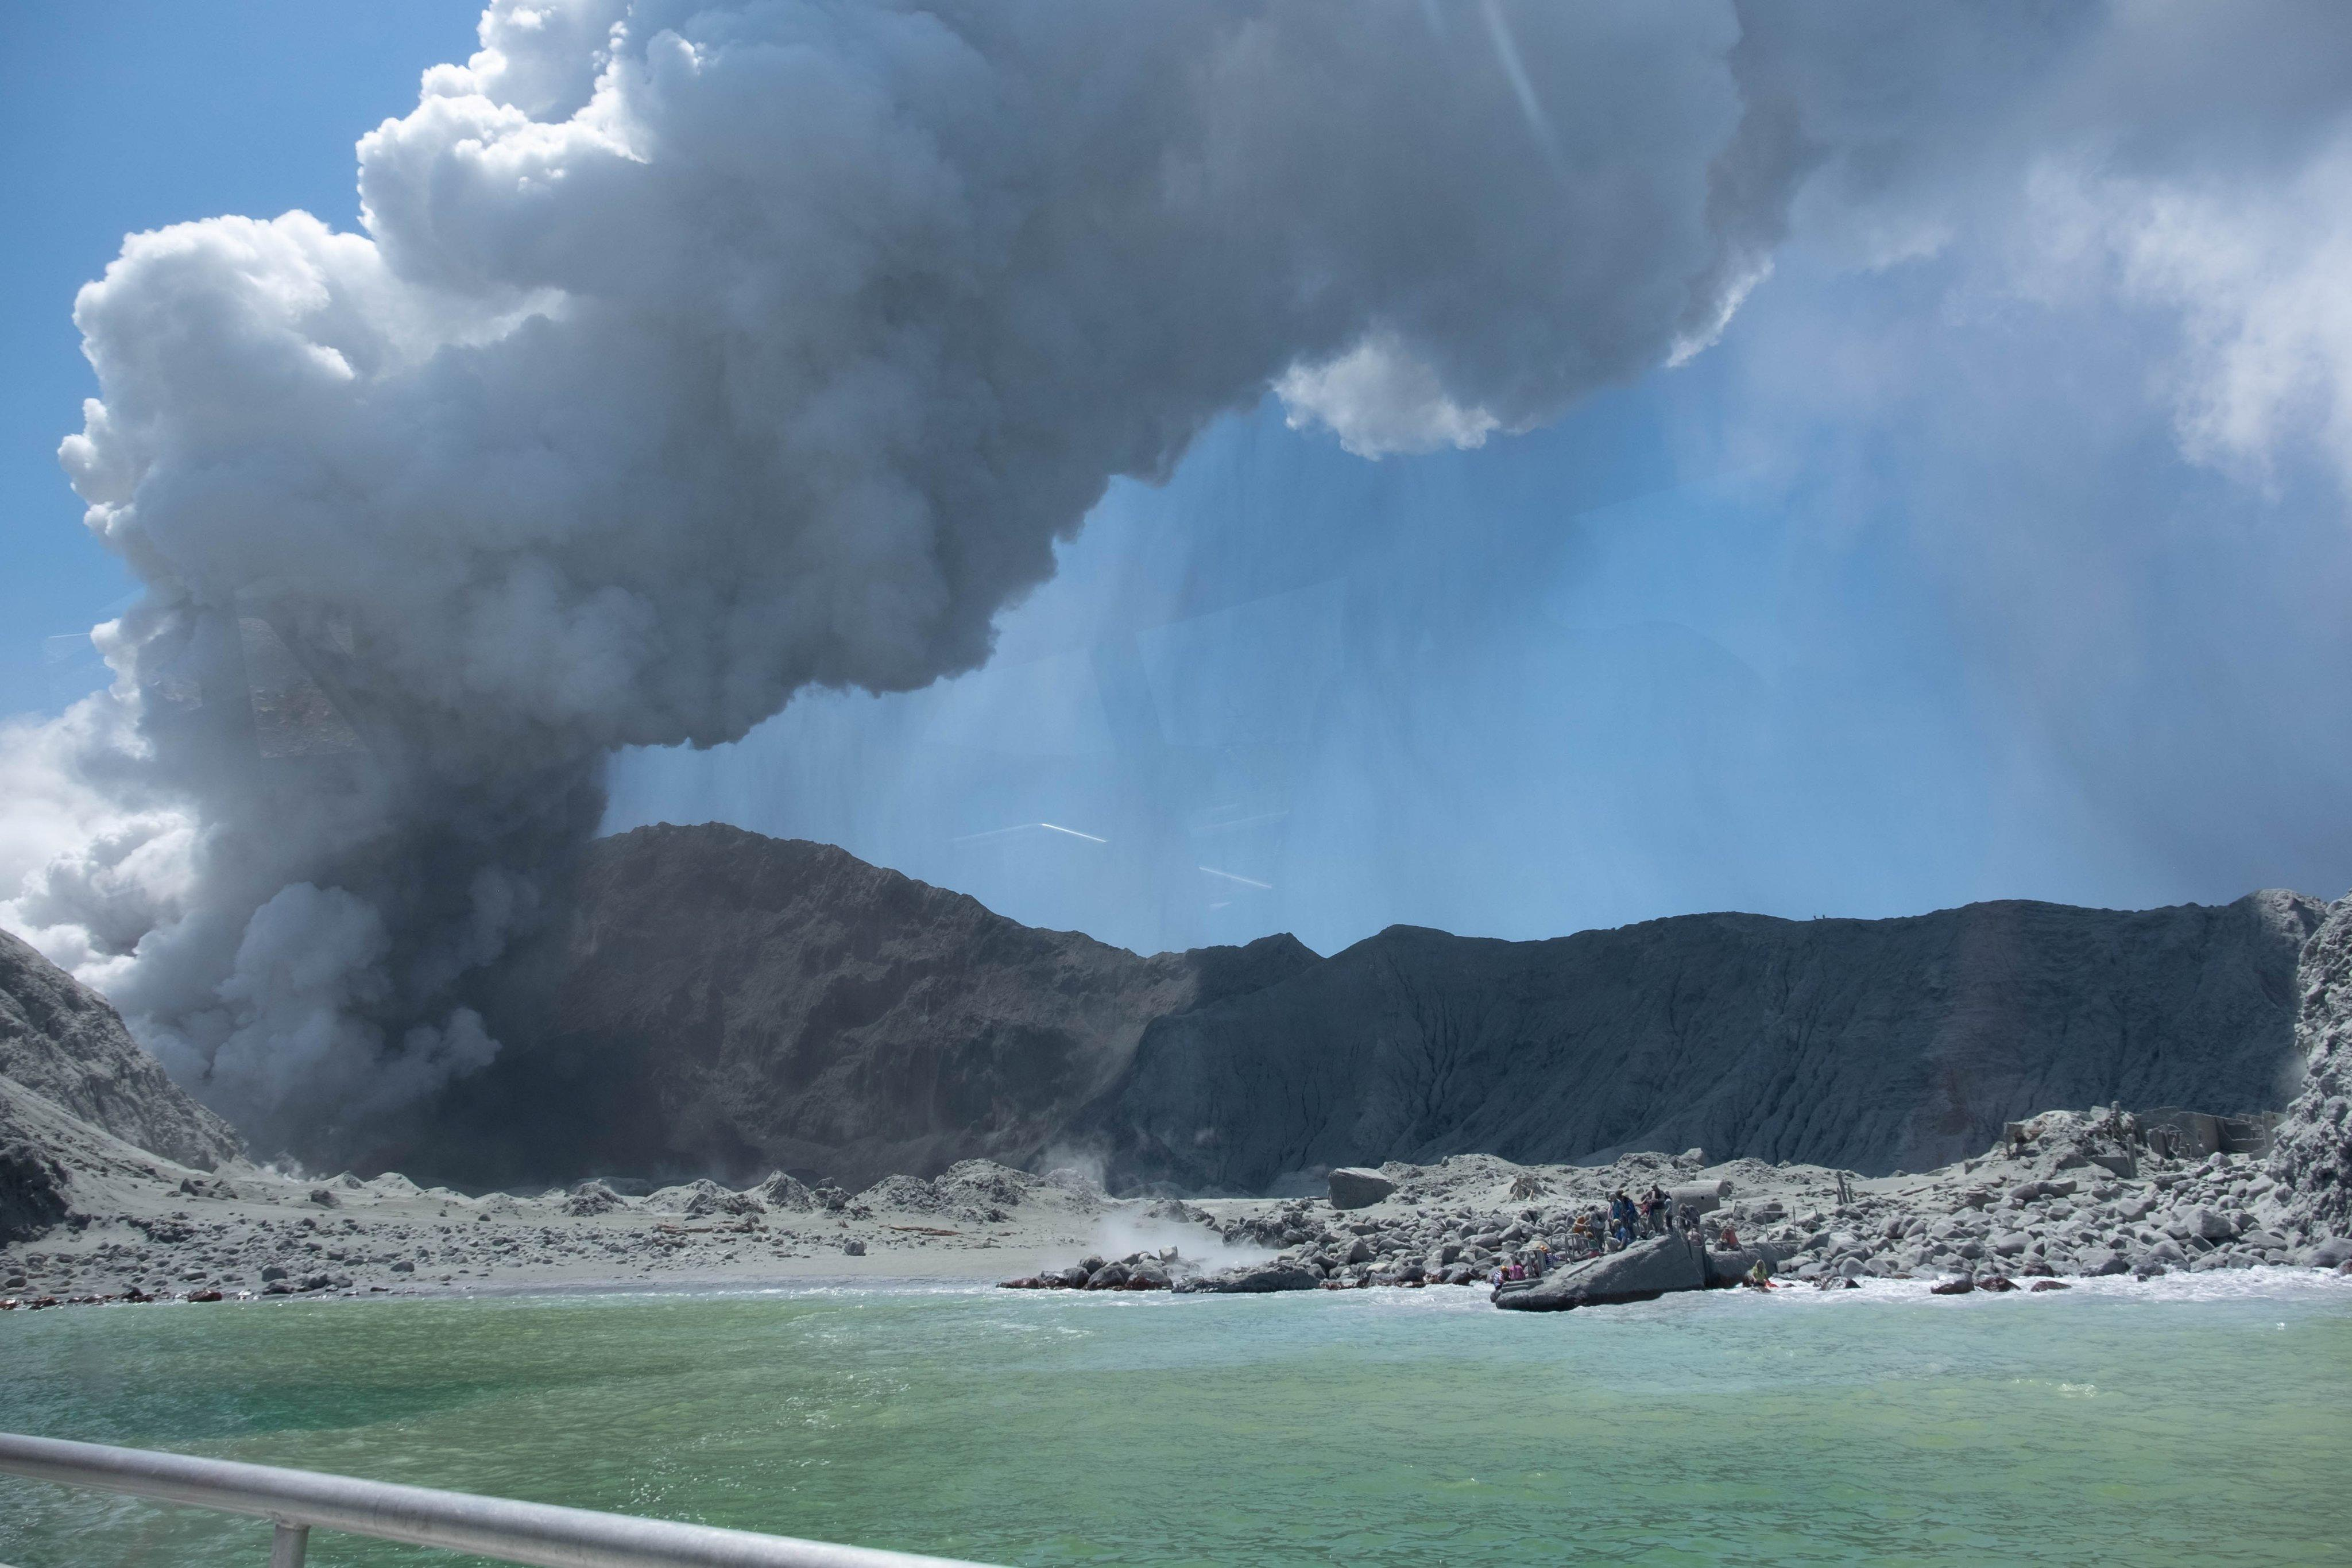 Tourist photos capture dramatic aftermath of New Zealand volcanic eruption